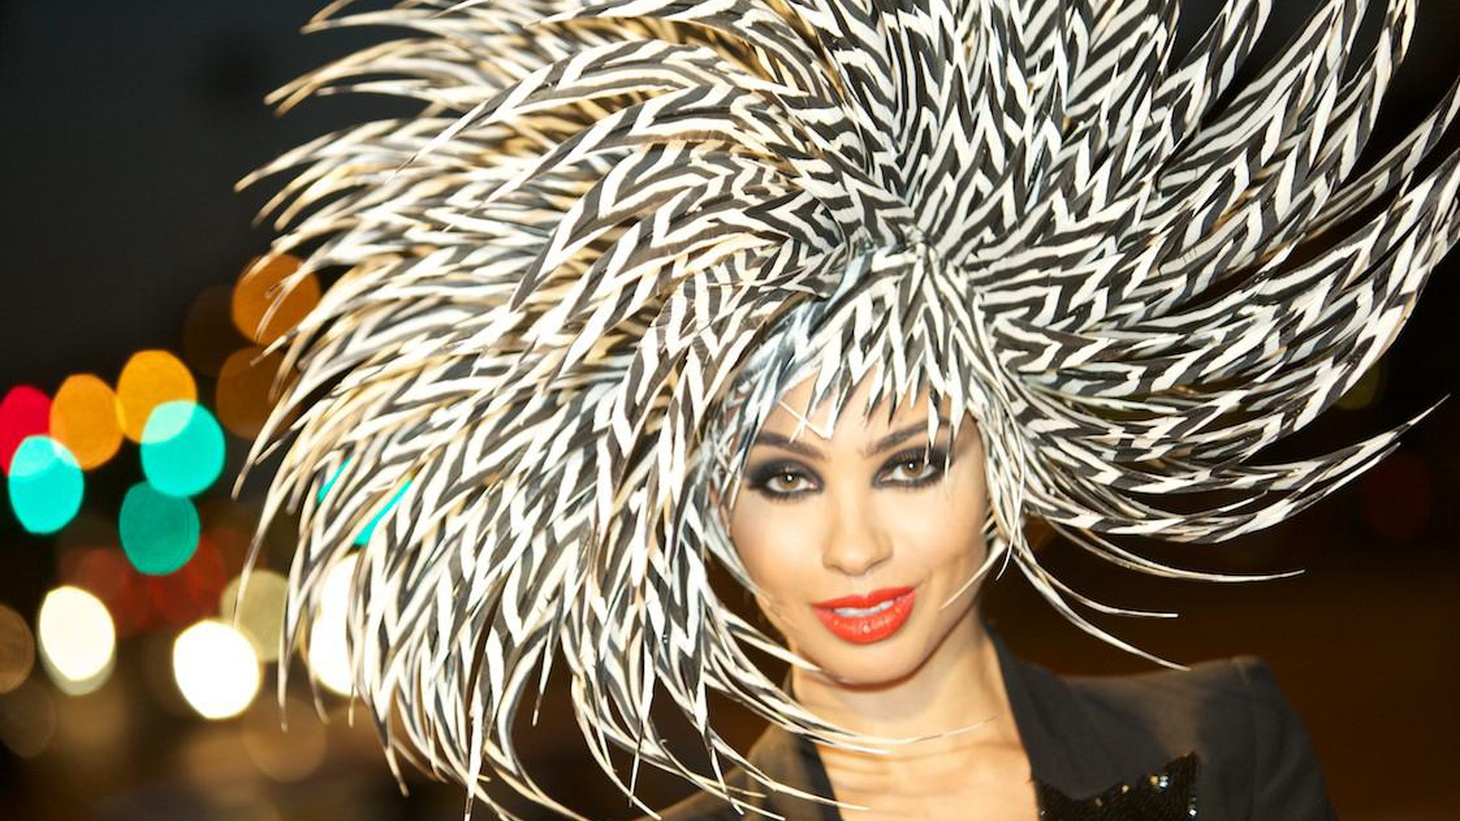 From an opera designed by Frank Gehry and Rodarte to Philip Treacy's futuristic hats, a look at how some old traditions are being reconsidered for our time.